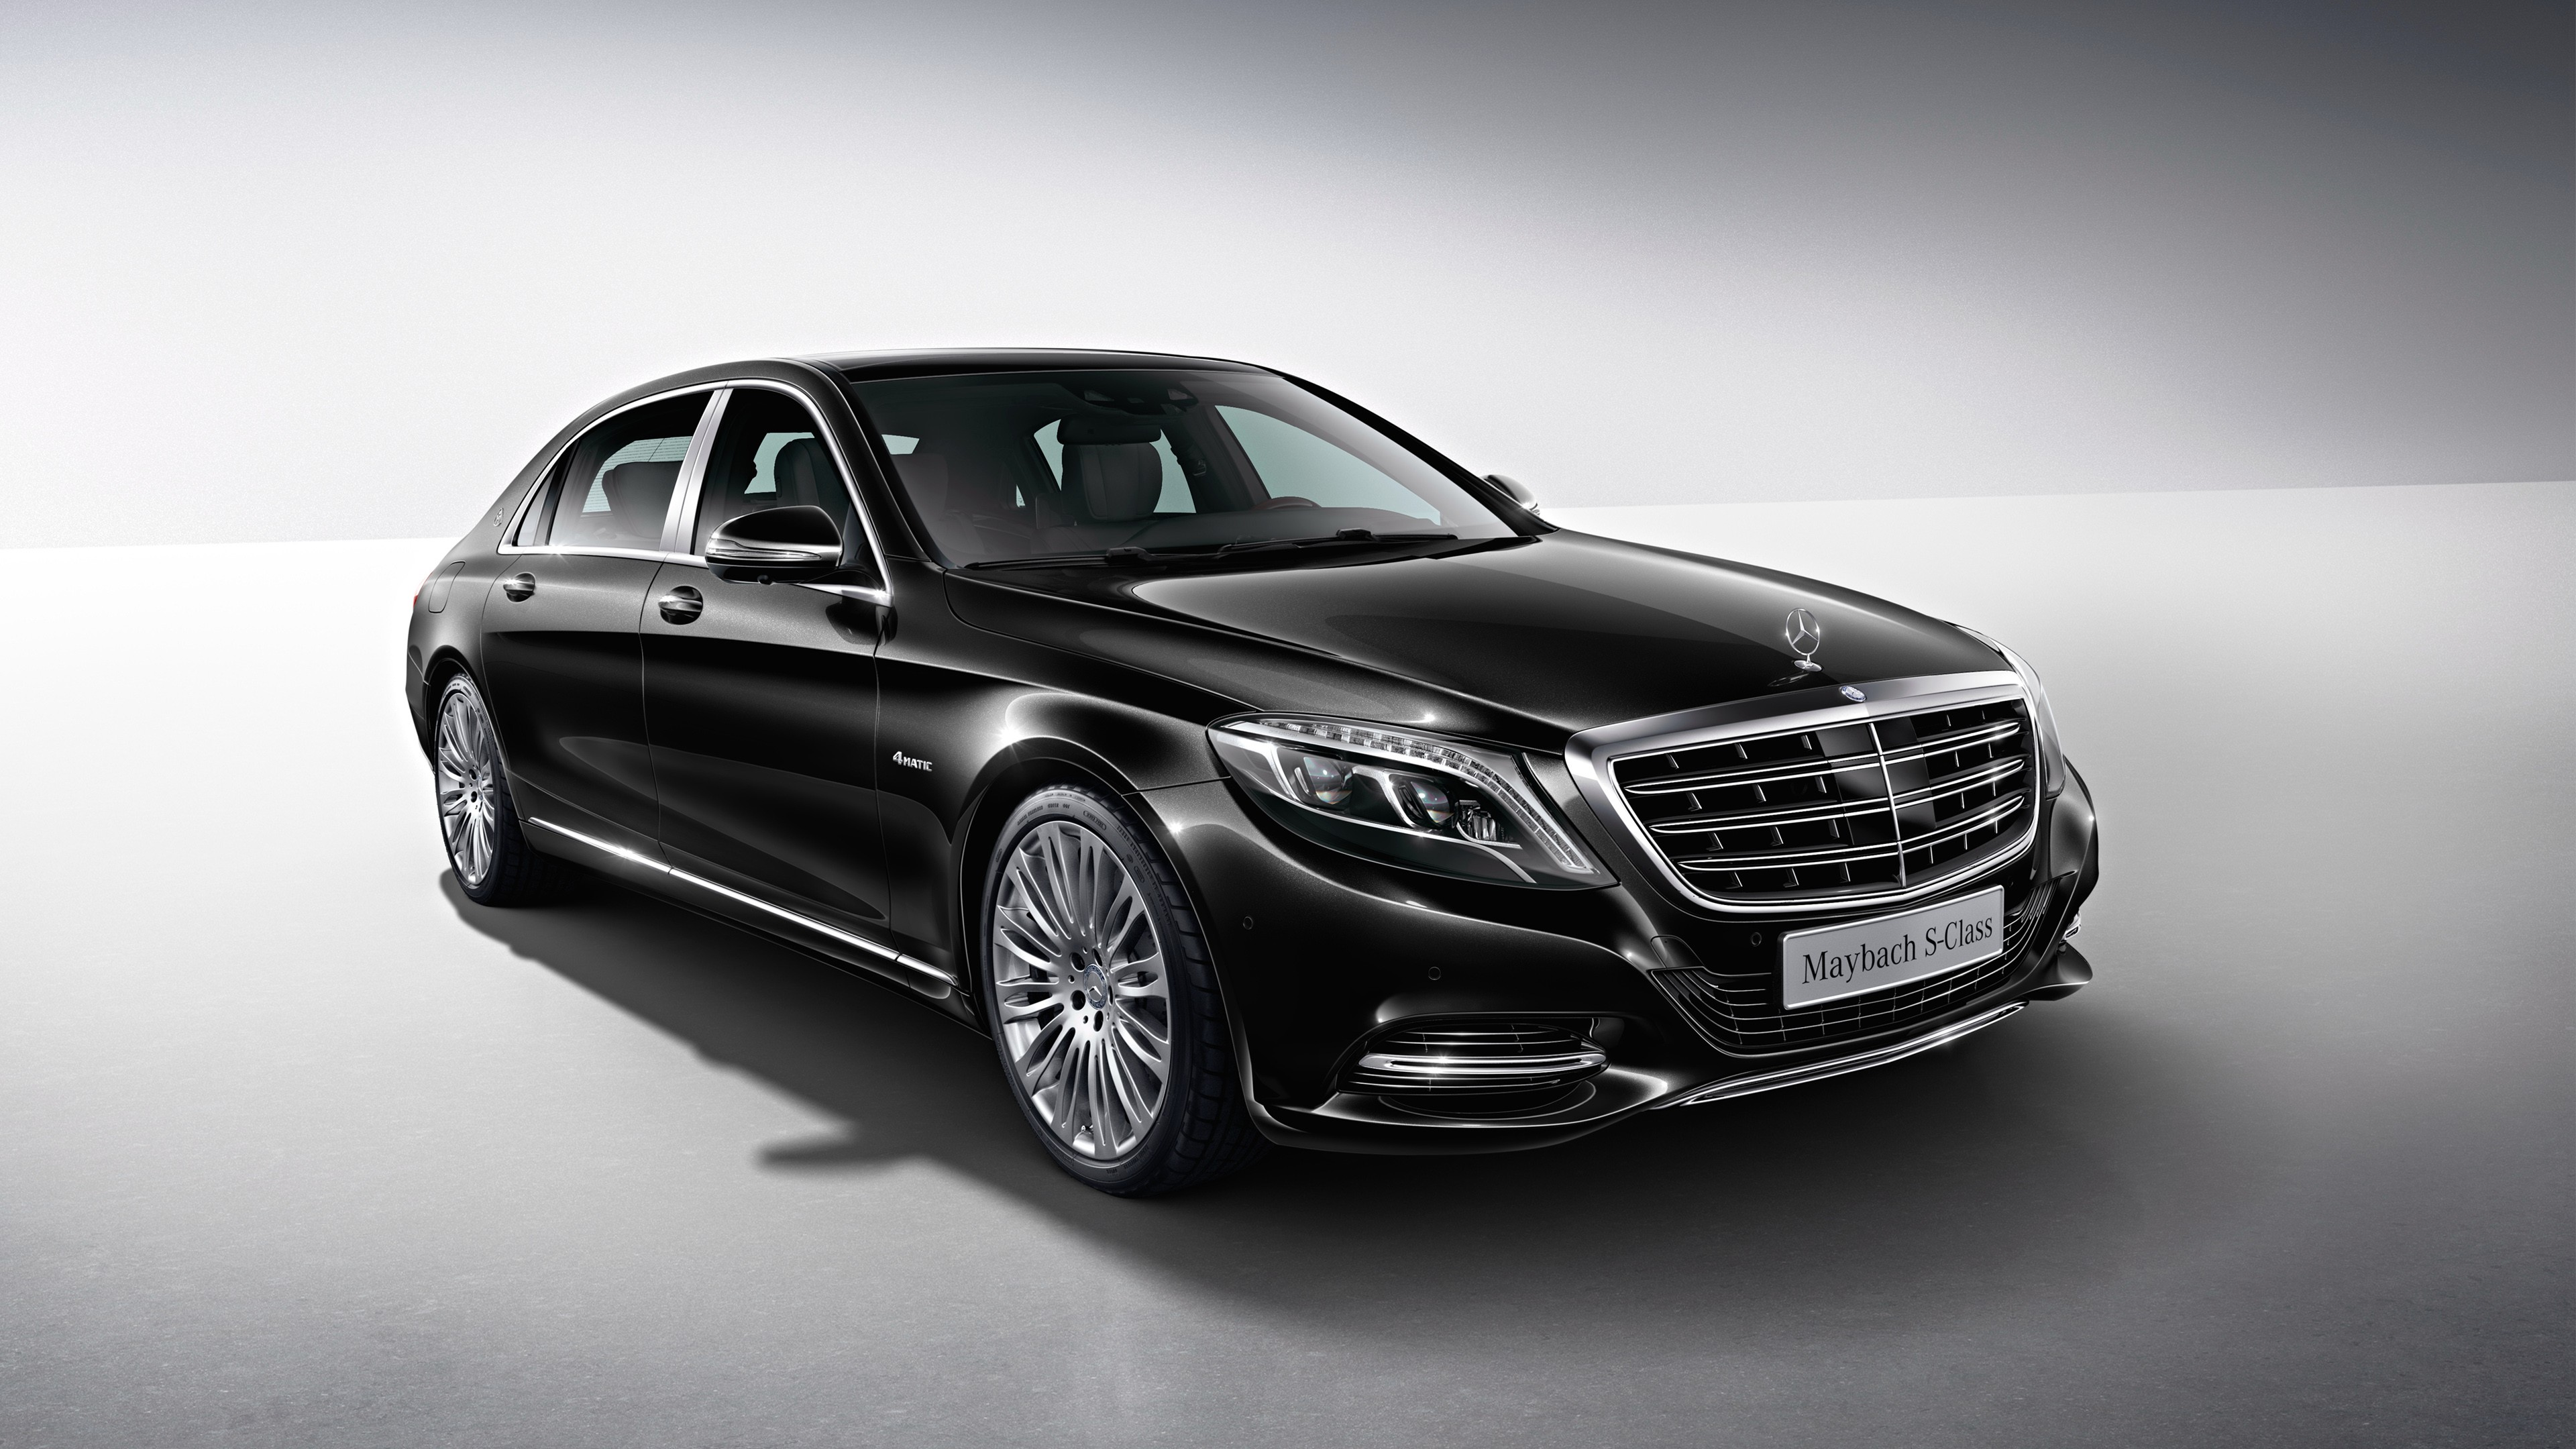 2015 maybach mercedes benz s class wallpaper hd car for Mercedes benz class s